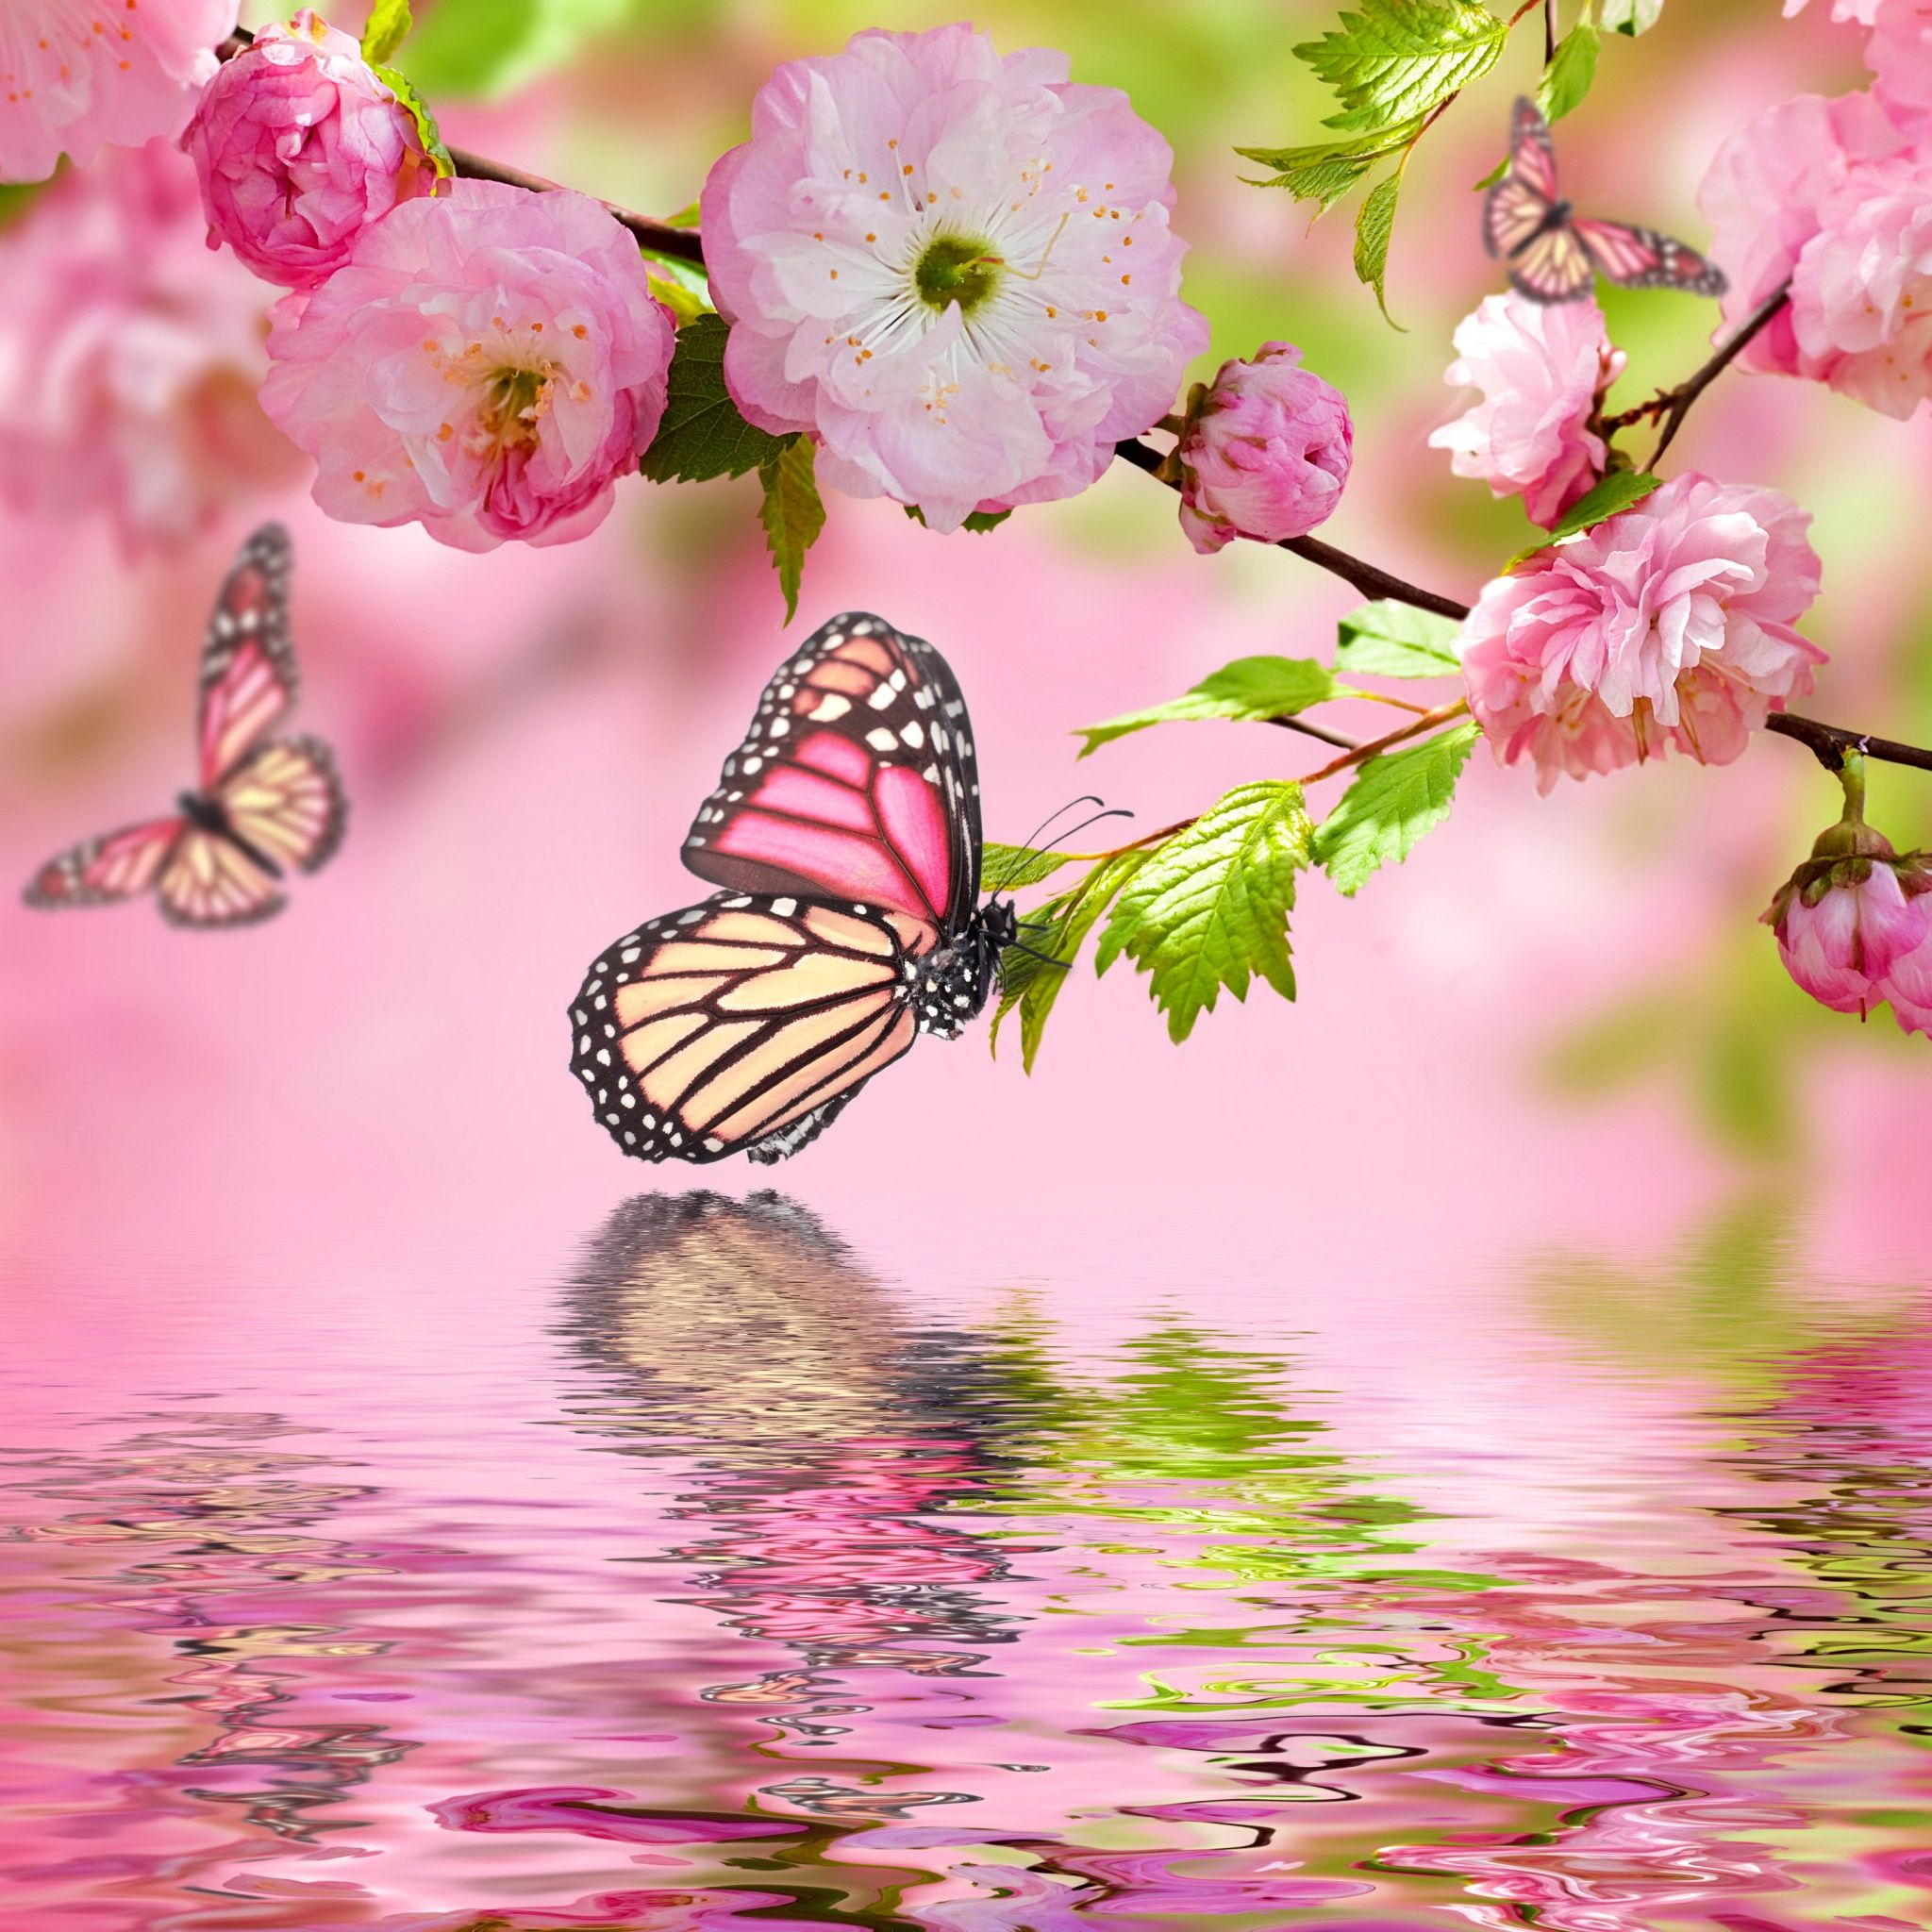 spring blosson with butterfly tap for more dreams of spring wallpapers for iphone android